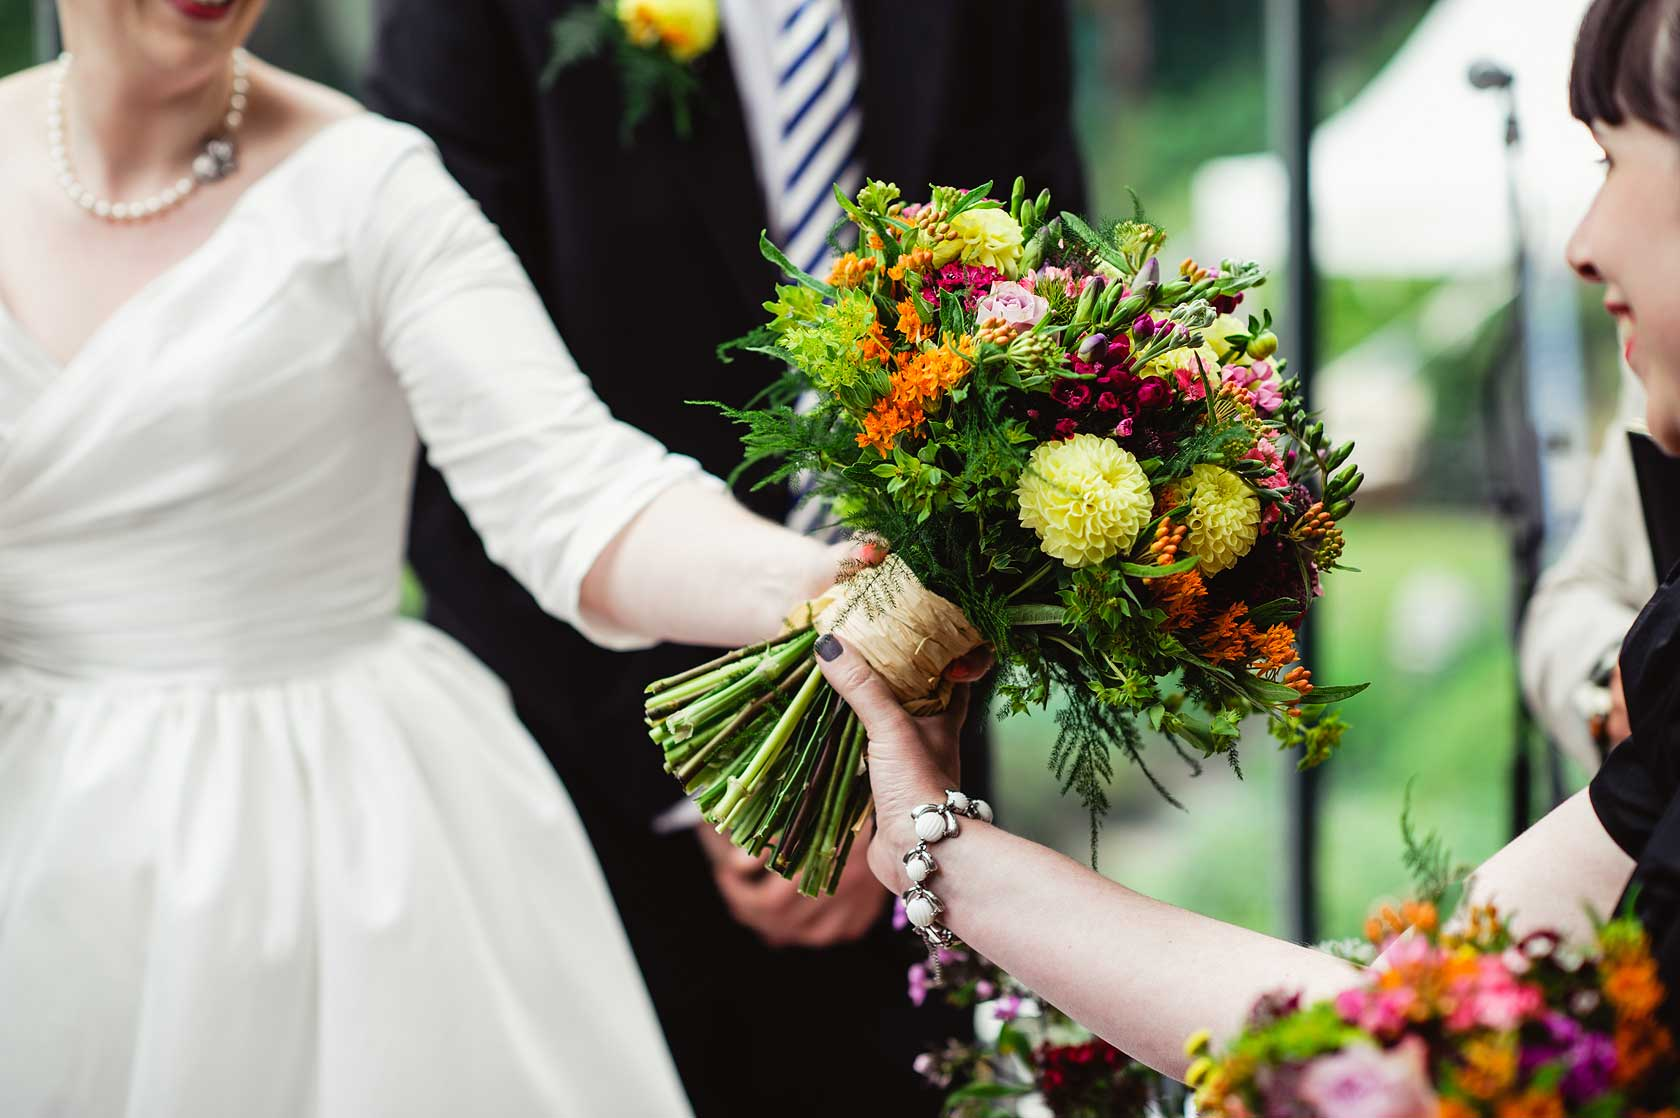 Bridal bouquet is passed to the bride's sister